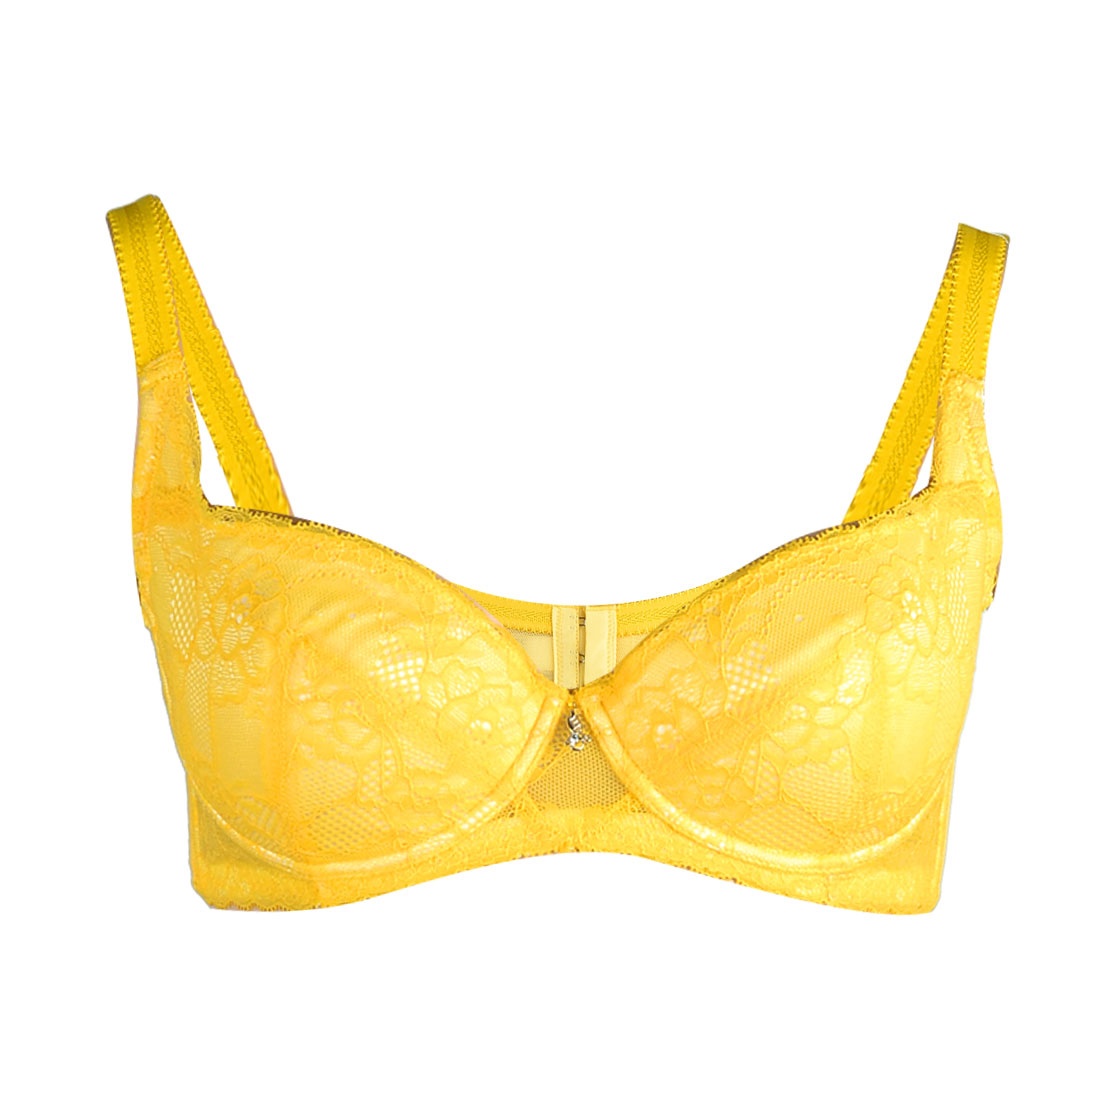 Women Full Cover Lace Cup Push Up Underwear Underwired Bra Yellow AU 12B